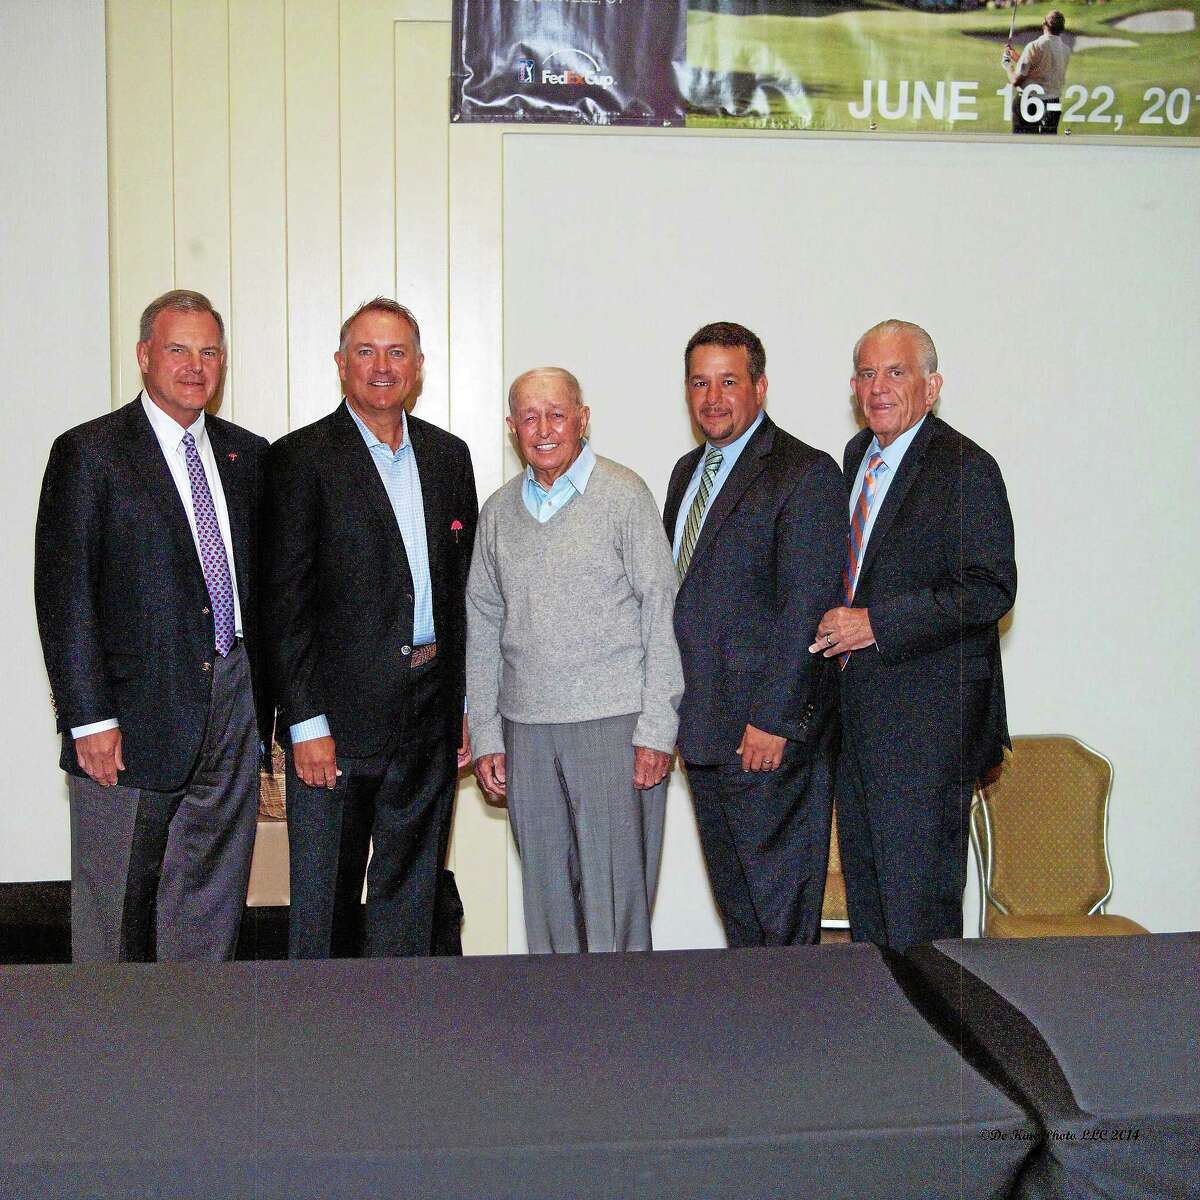 Travelers Companies Executive Vice President and Chief Administrative Officer Andy Bessette, Ken Duke, Bob Toski, Chamber Chairman Rich Carella and Middlesex County Chamber President Larry McHugh.